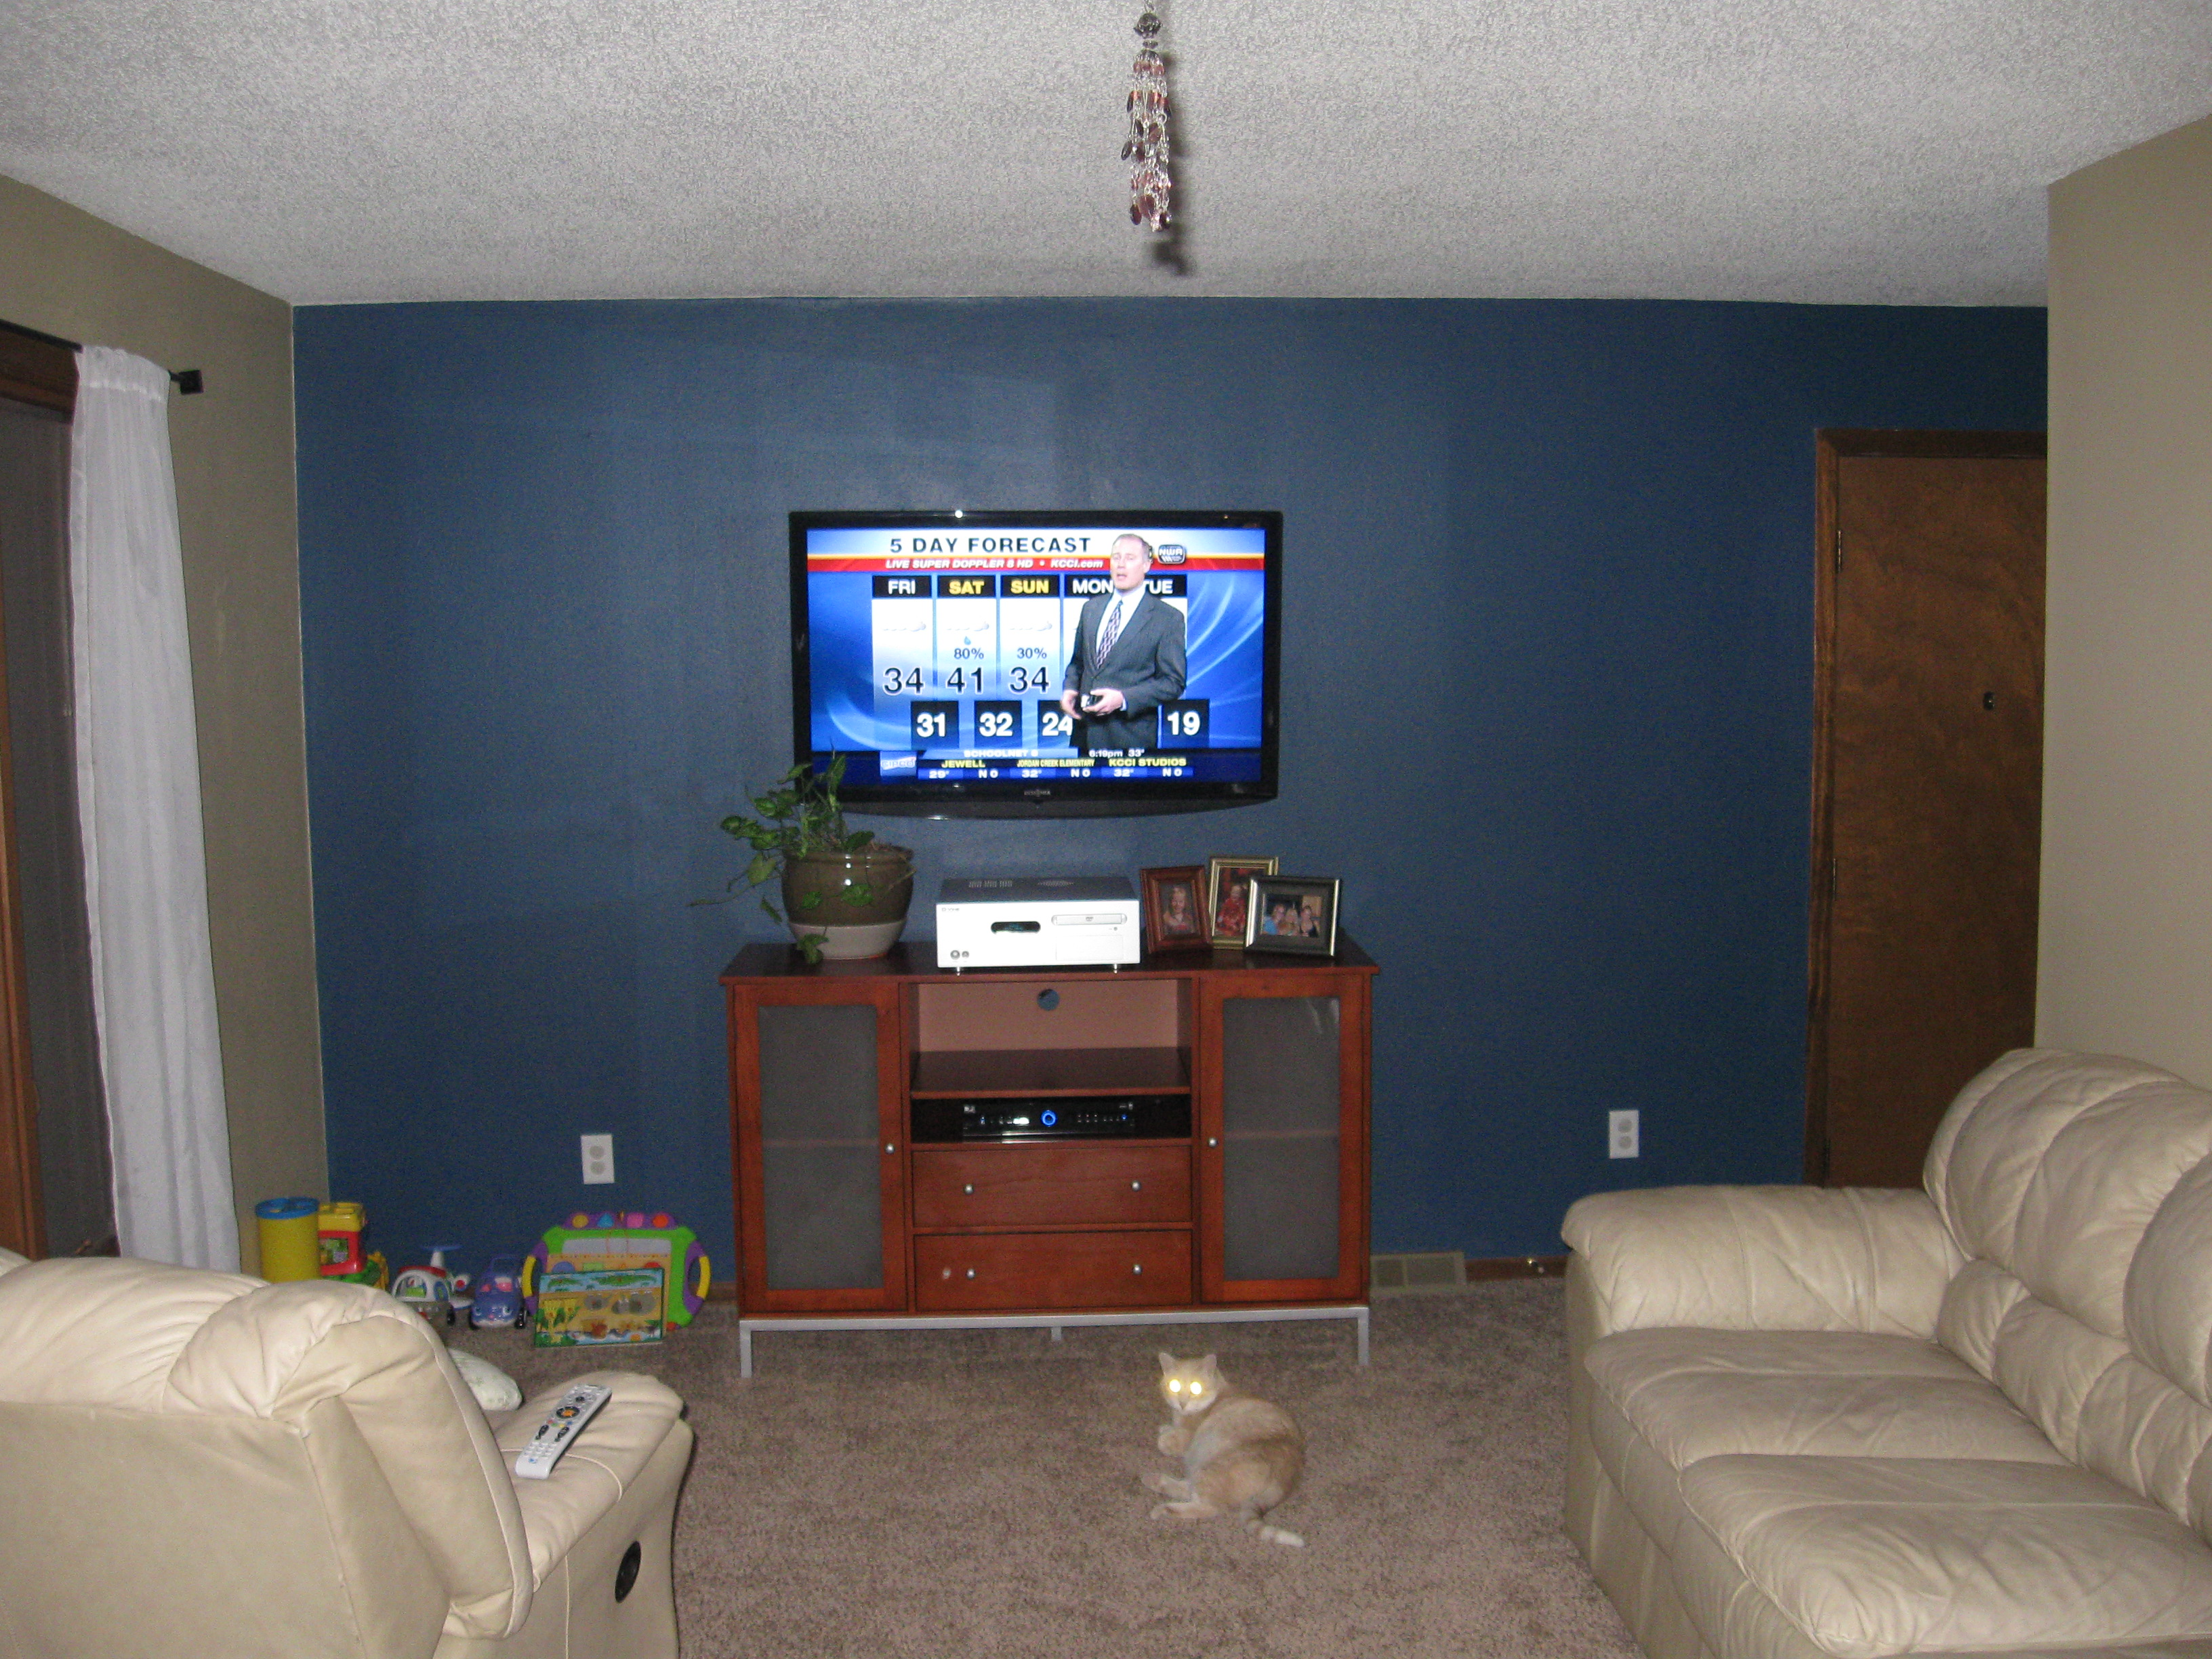 How To Run Hdmi Cable Through Existing Construction Drywall Tv Wiring Wall Plates Flat Screen Mounted Furniture